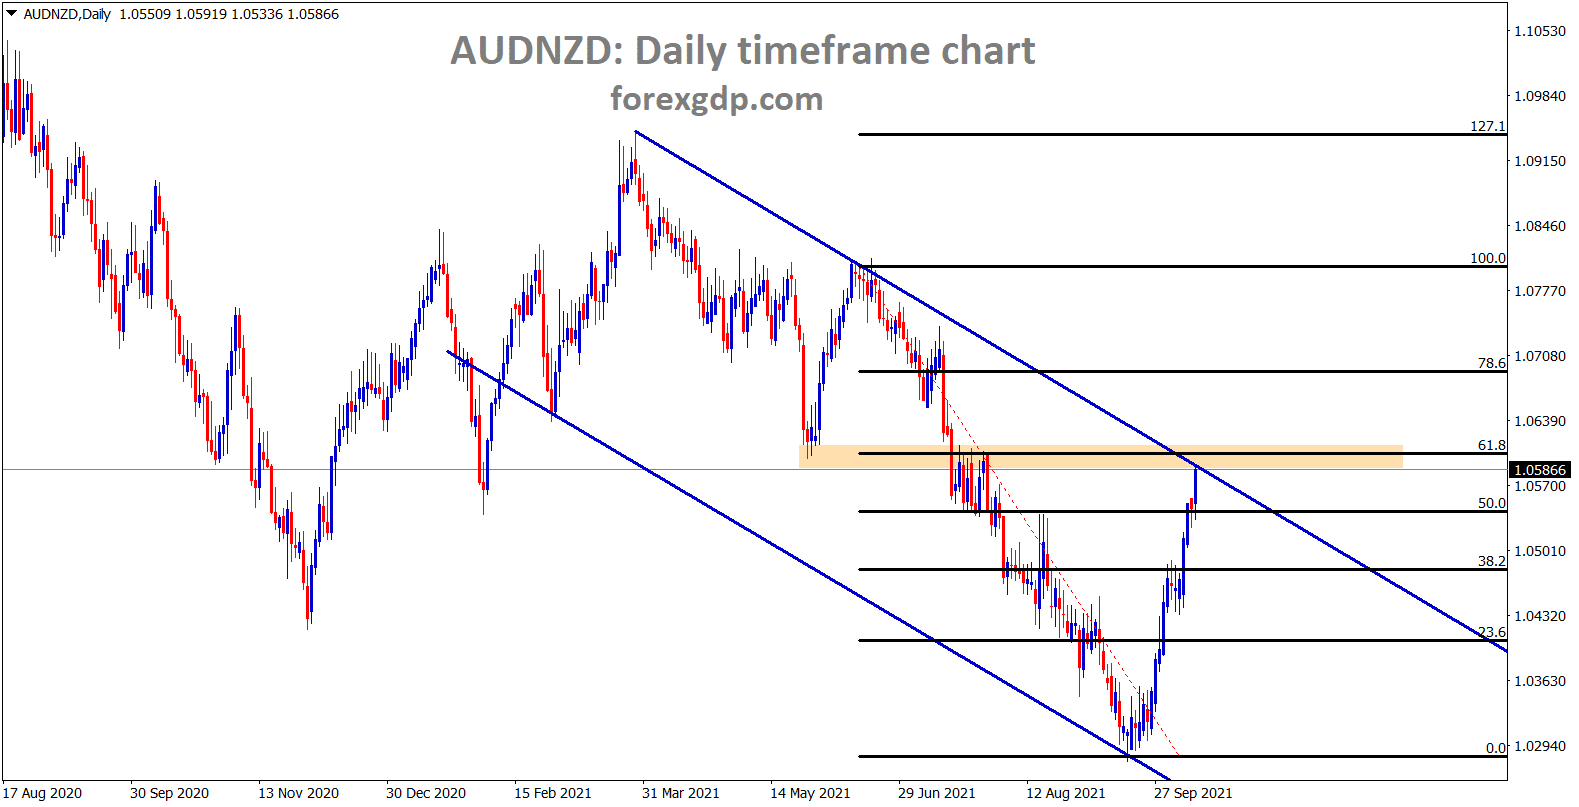 AUDNZD hits the lower high area of the downtrend line and its near to 61.8 retracementt level